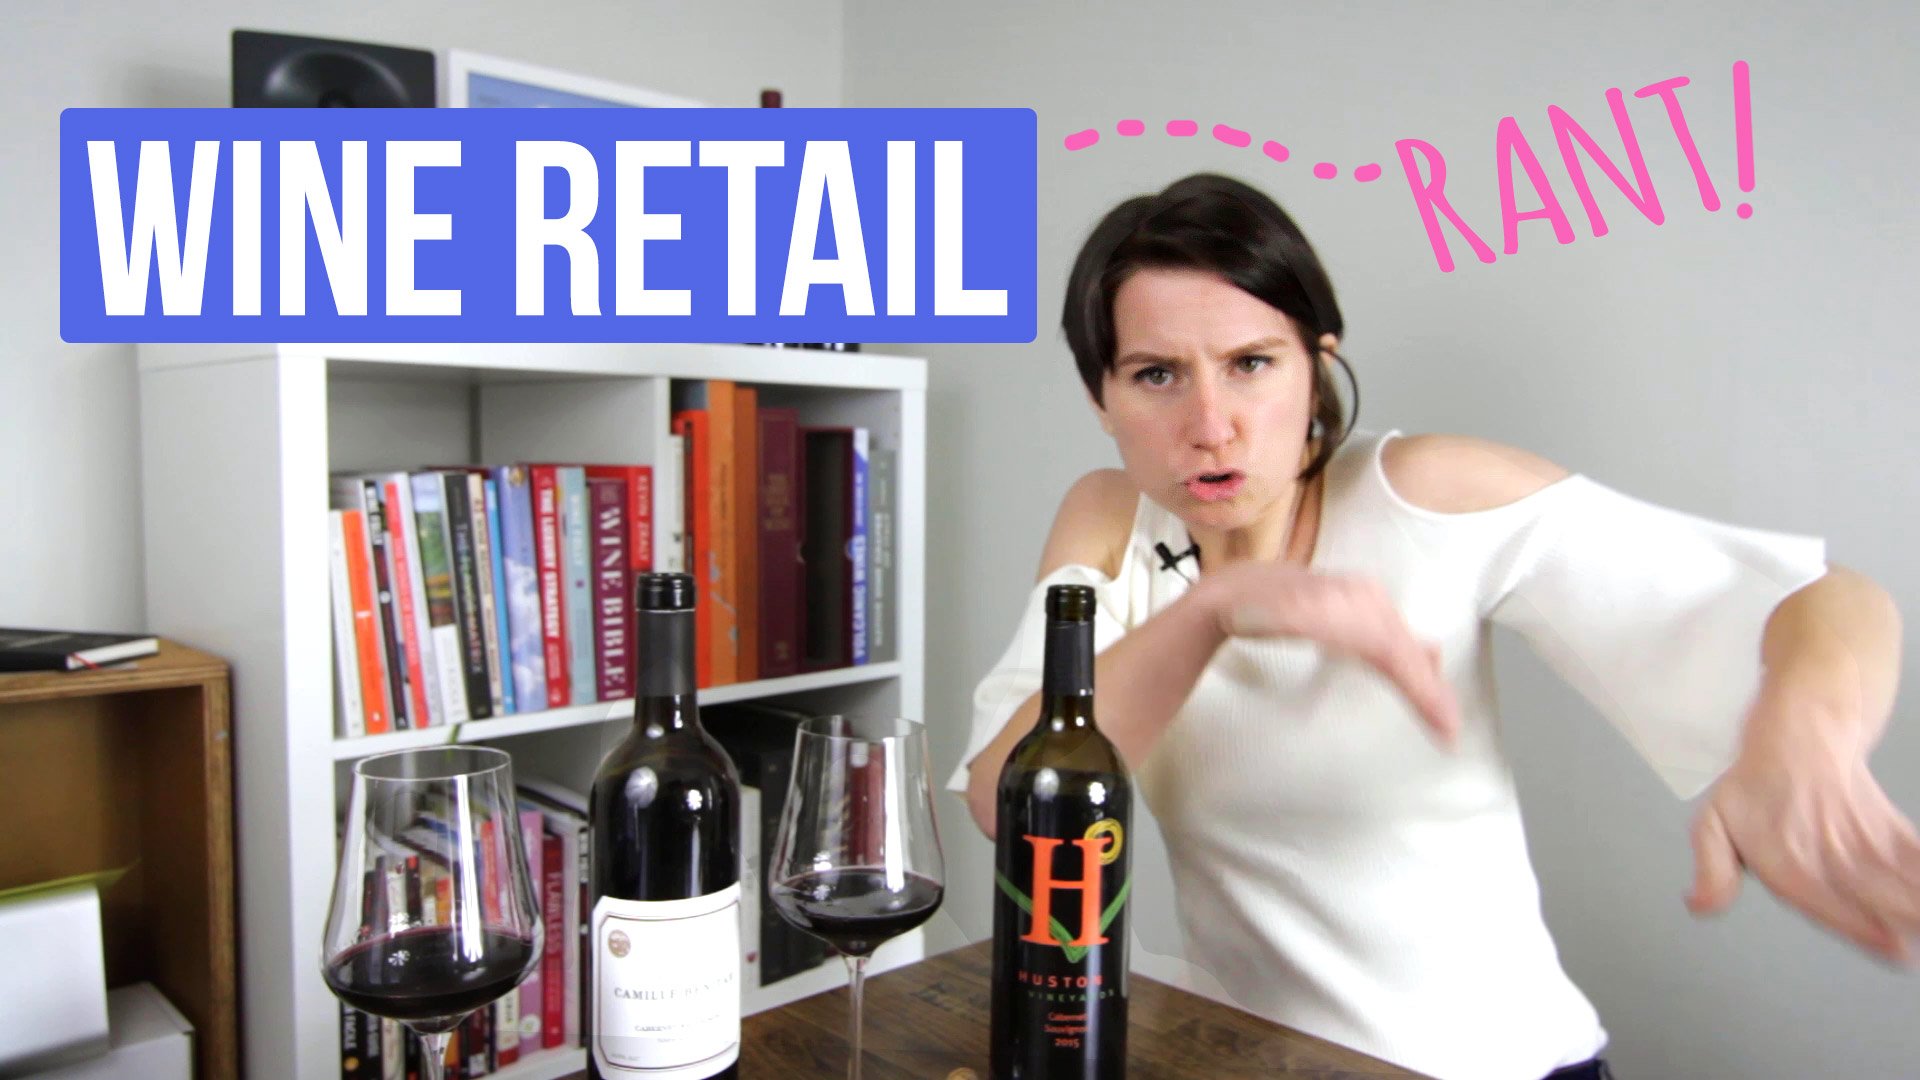 Wine Retail Rant (why Grocery Store Wines Are Rigged) photo